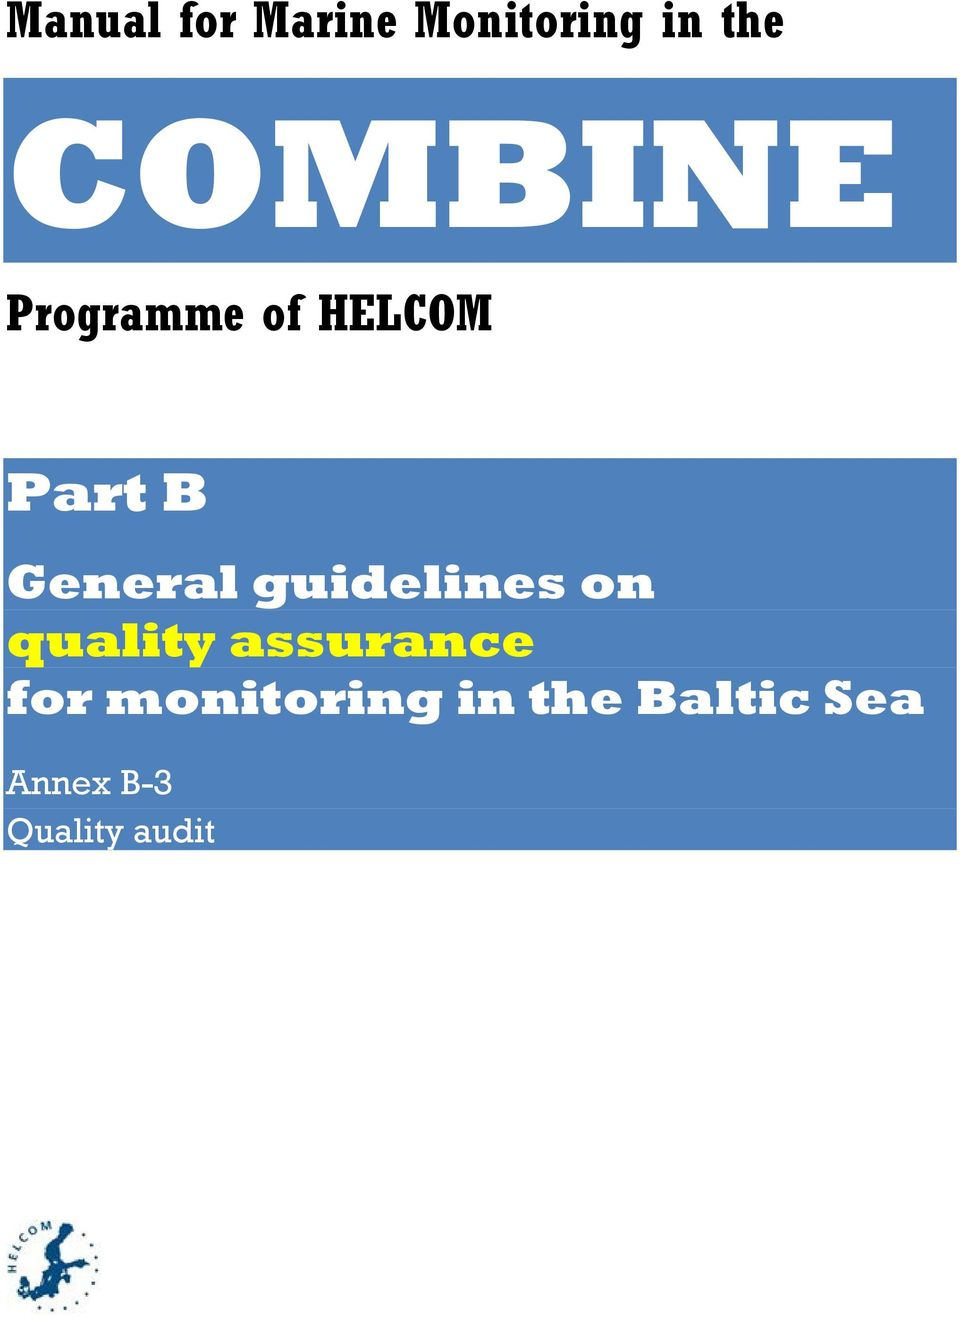 General guidelines on quality assurance